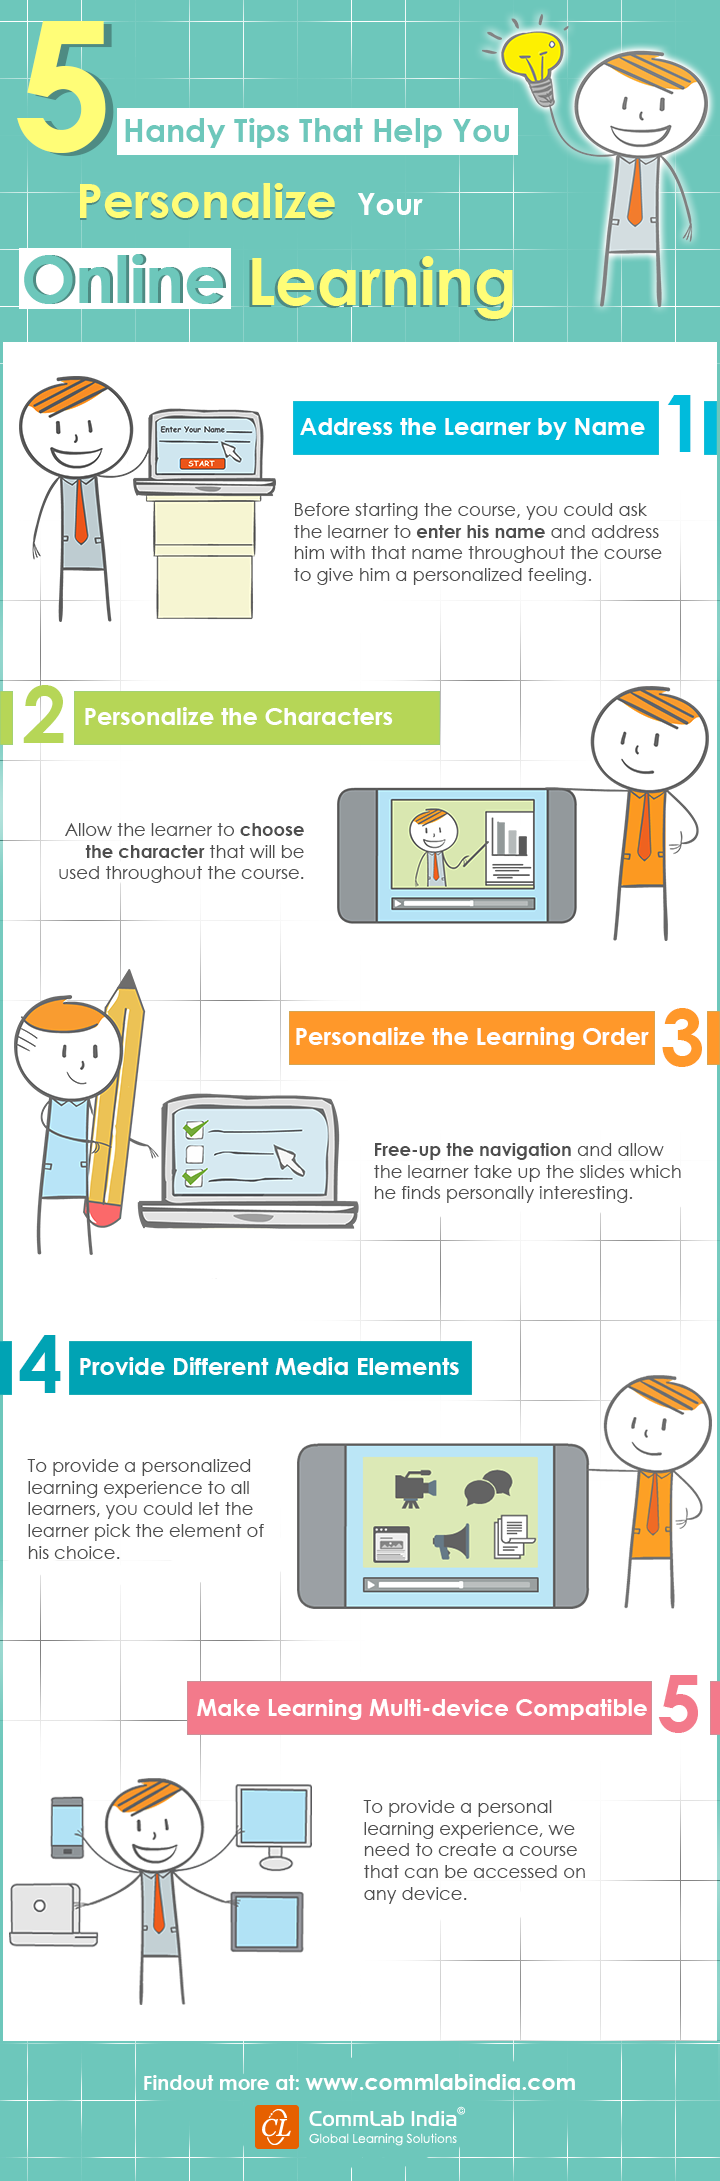 5 Handy Tips That Help You Personalize Your Online Learning [Infographic]